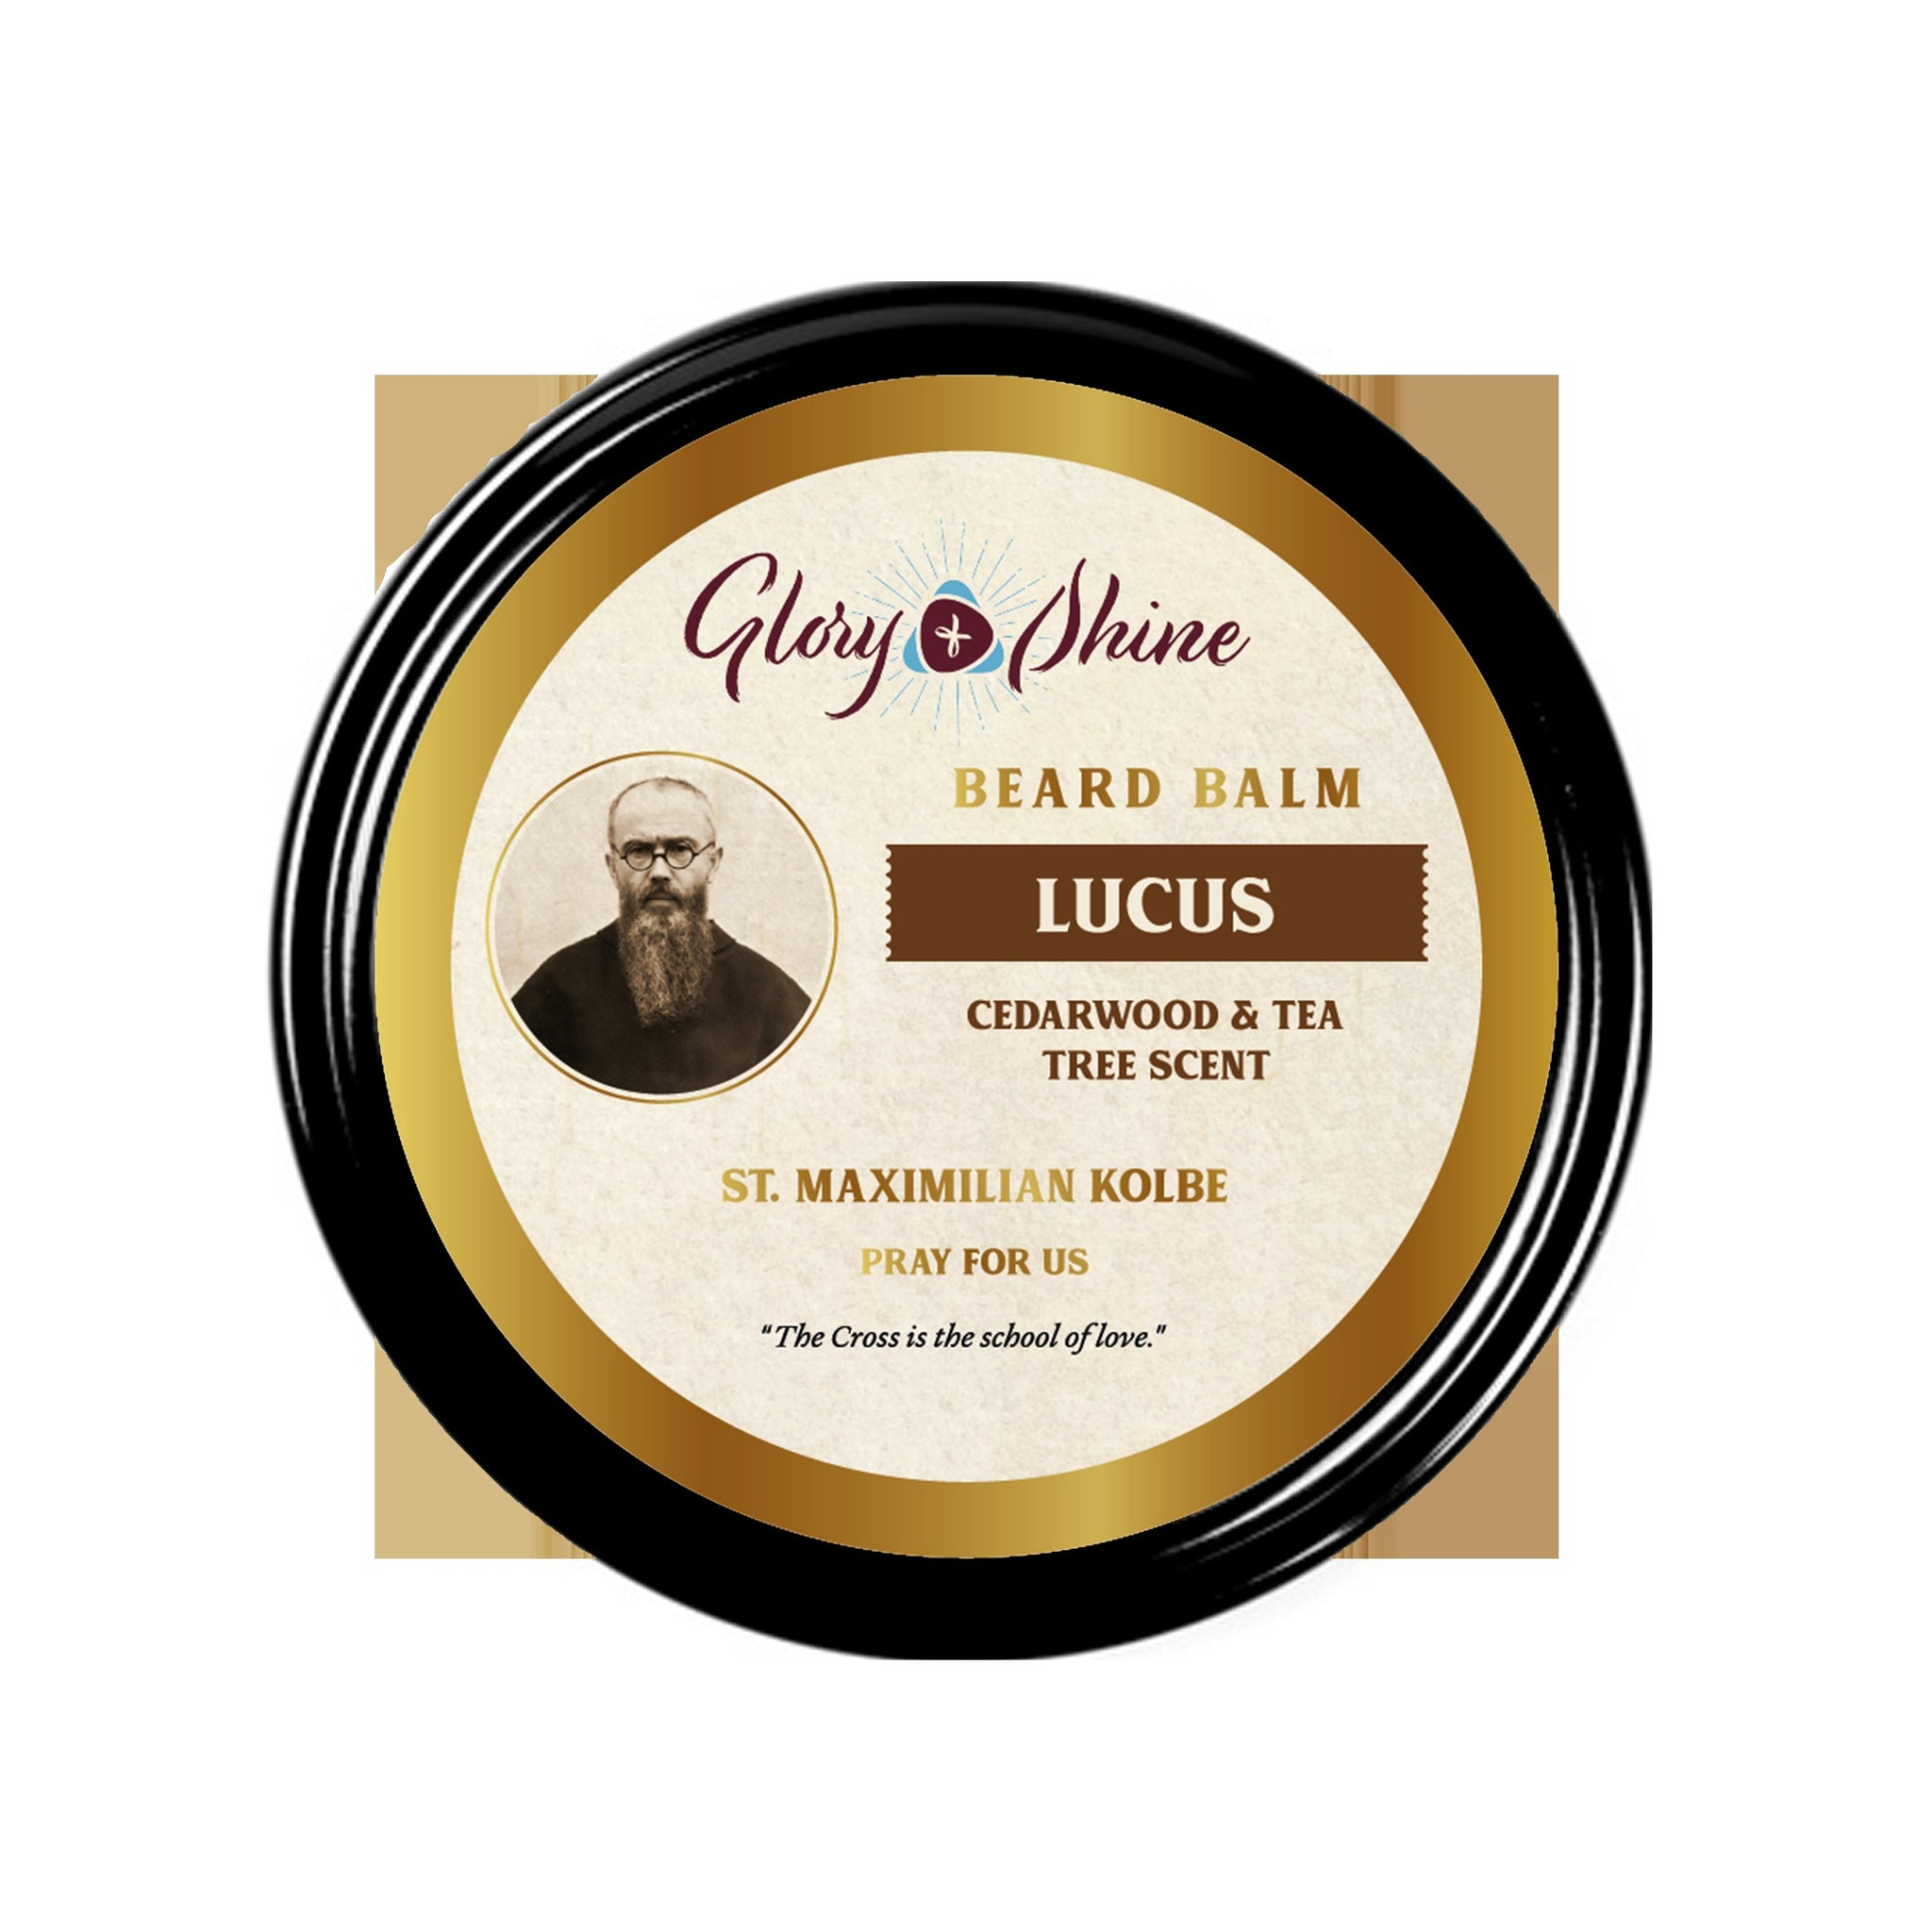 Catholic Beard Balm and Oil